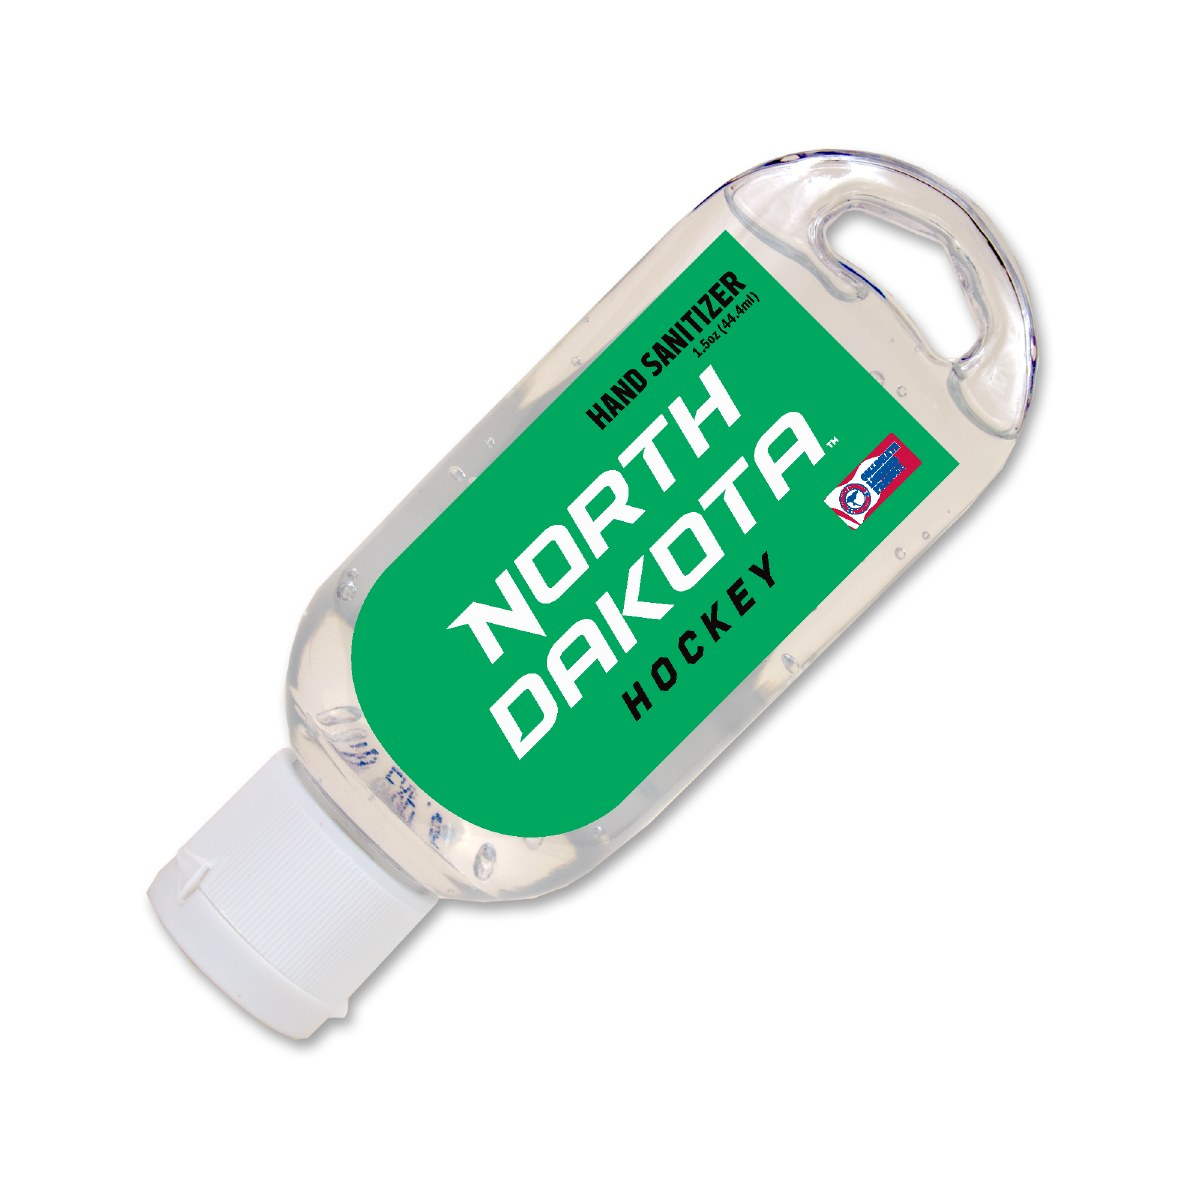 UNIVERSITY OF NORTH DAKOTA HOCKEY HAND SANITIZER